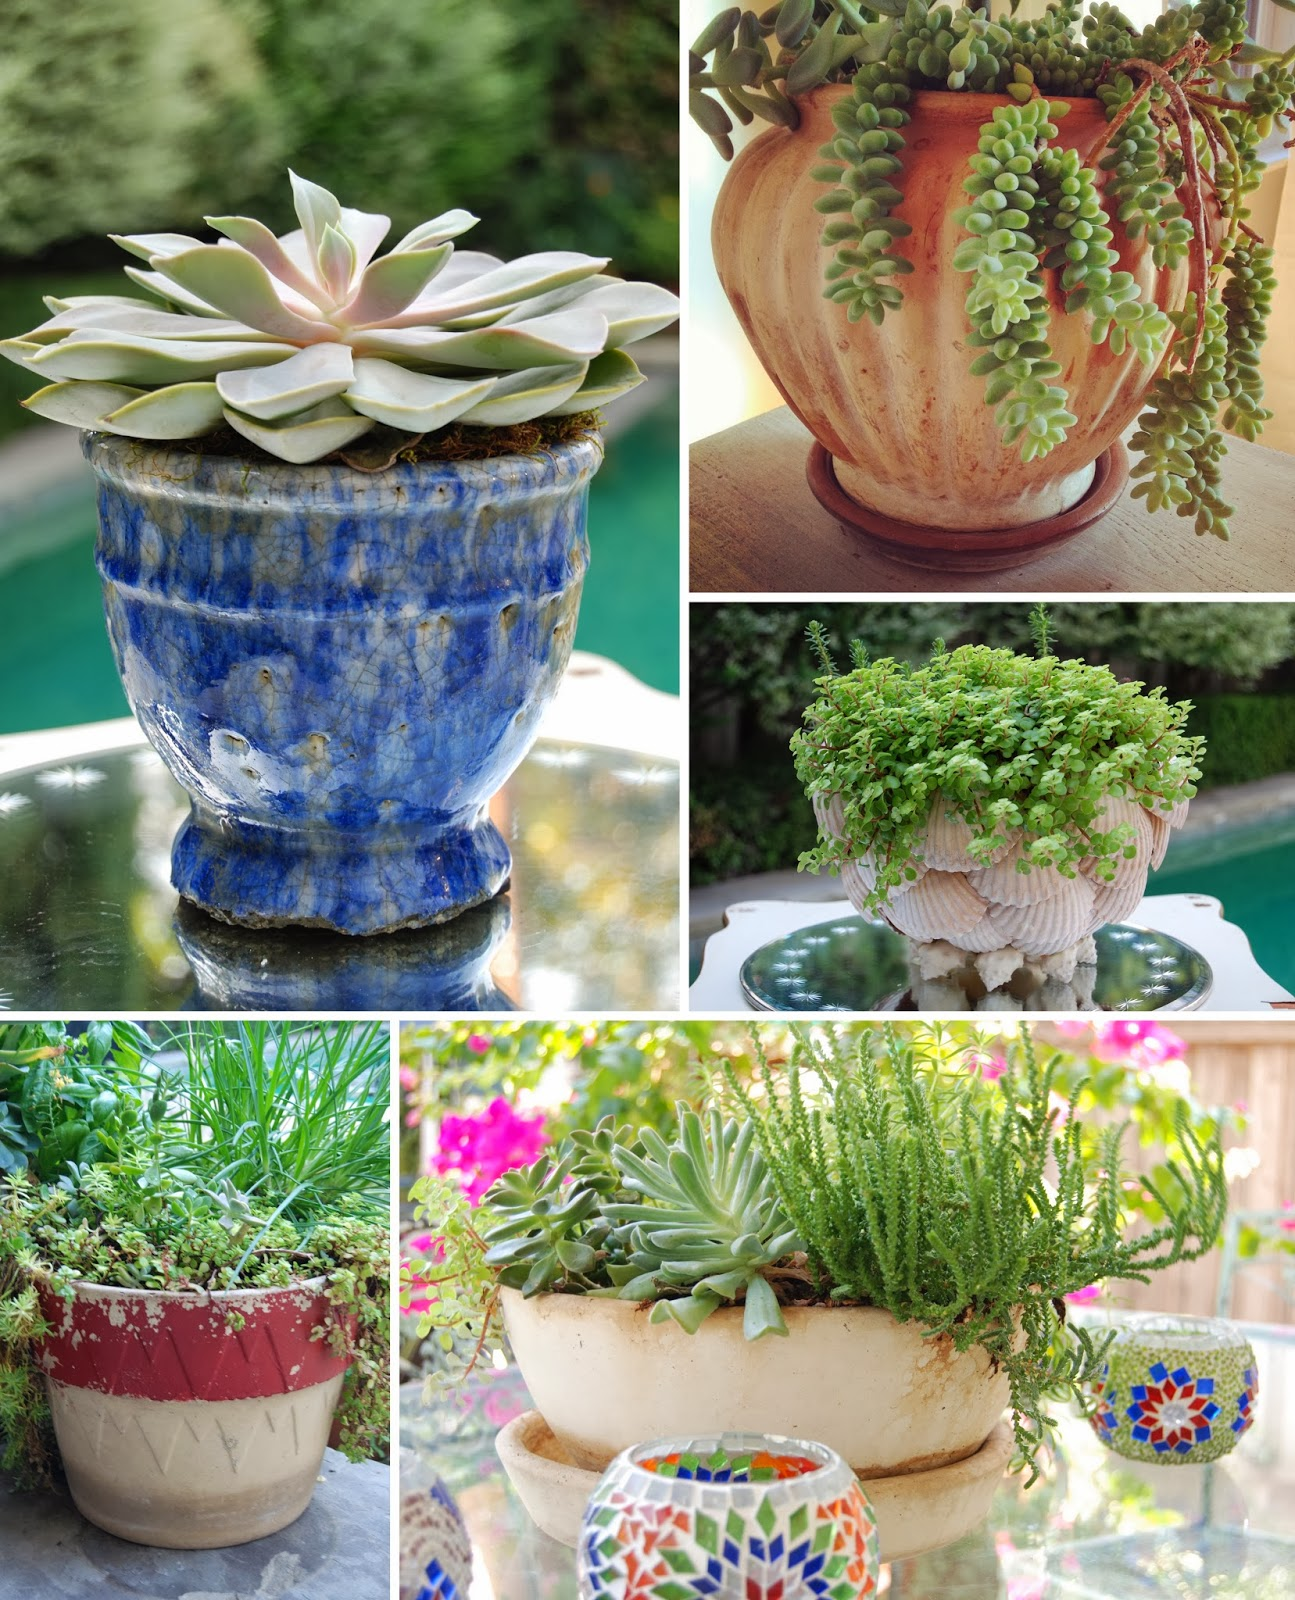 Garden Planters and Pots